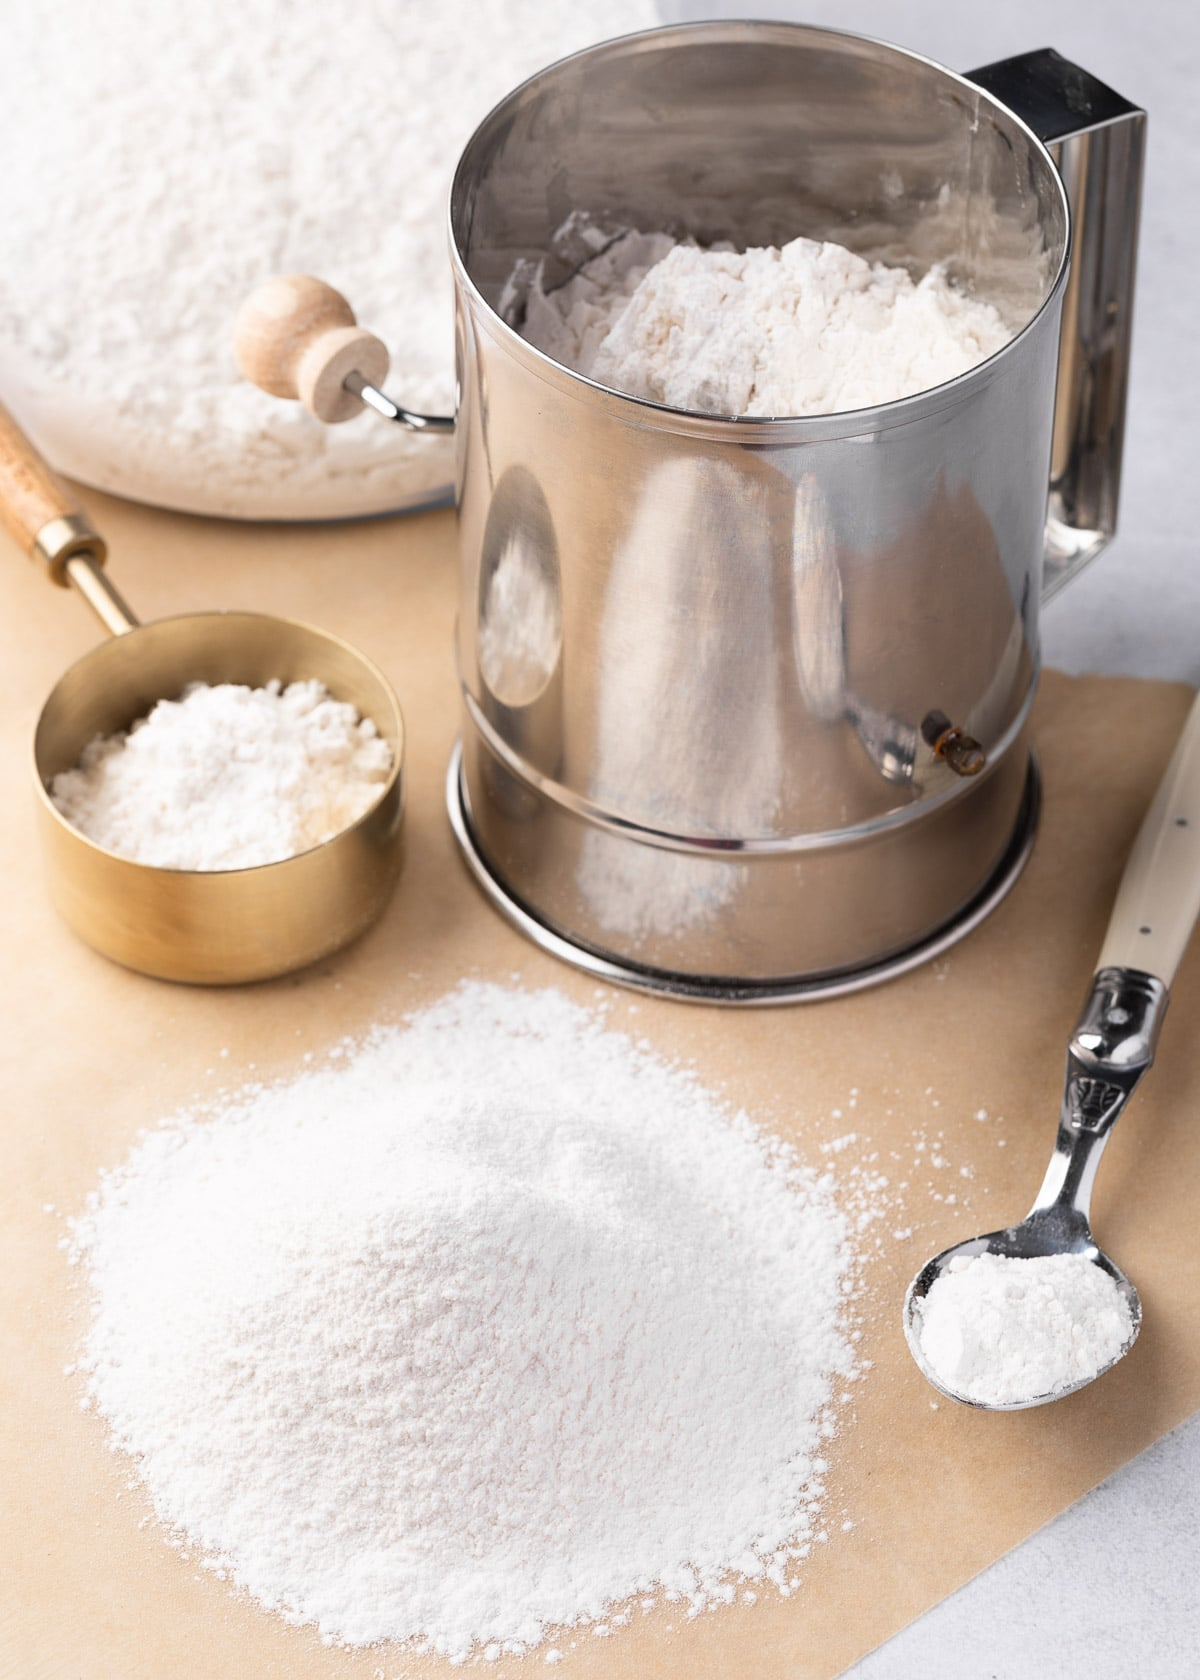 cake flour sifted onto a piece of parchment paper next to a stainless steel sifter